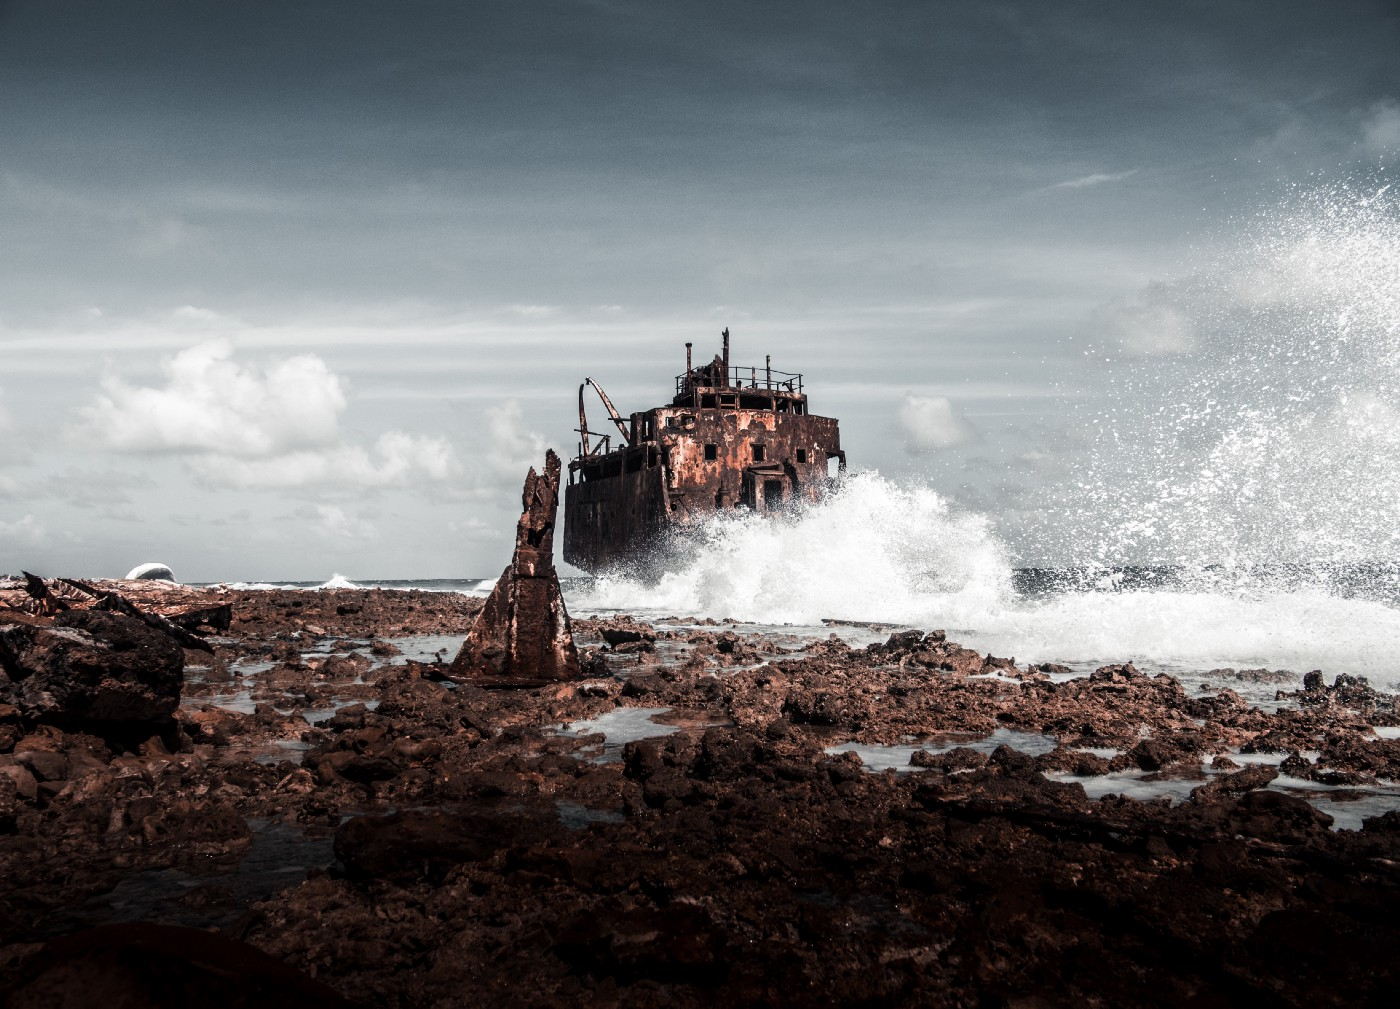 Waves crashing on rock with a derelict building in the background